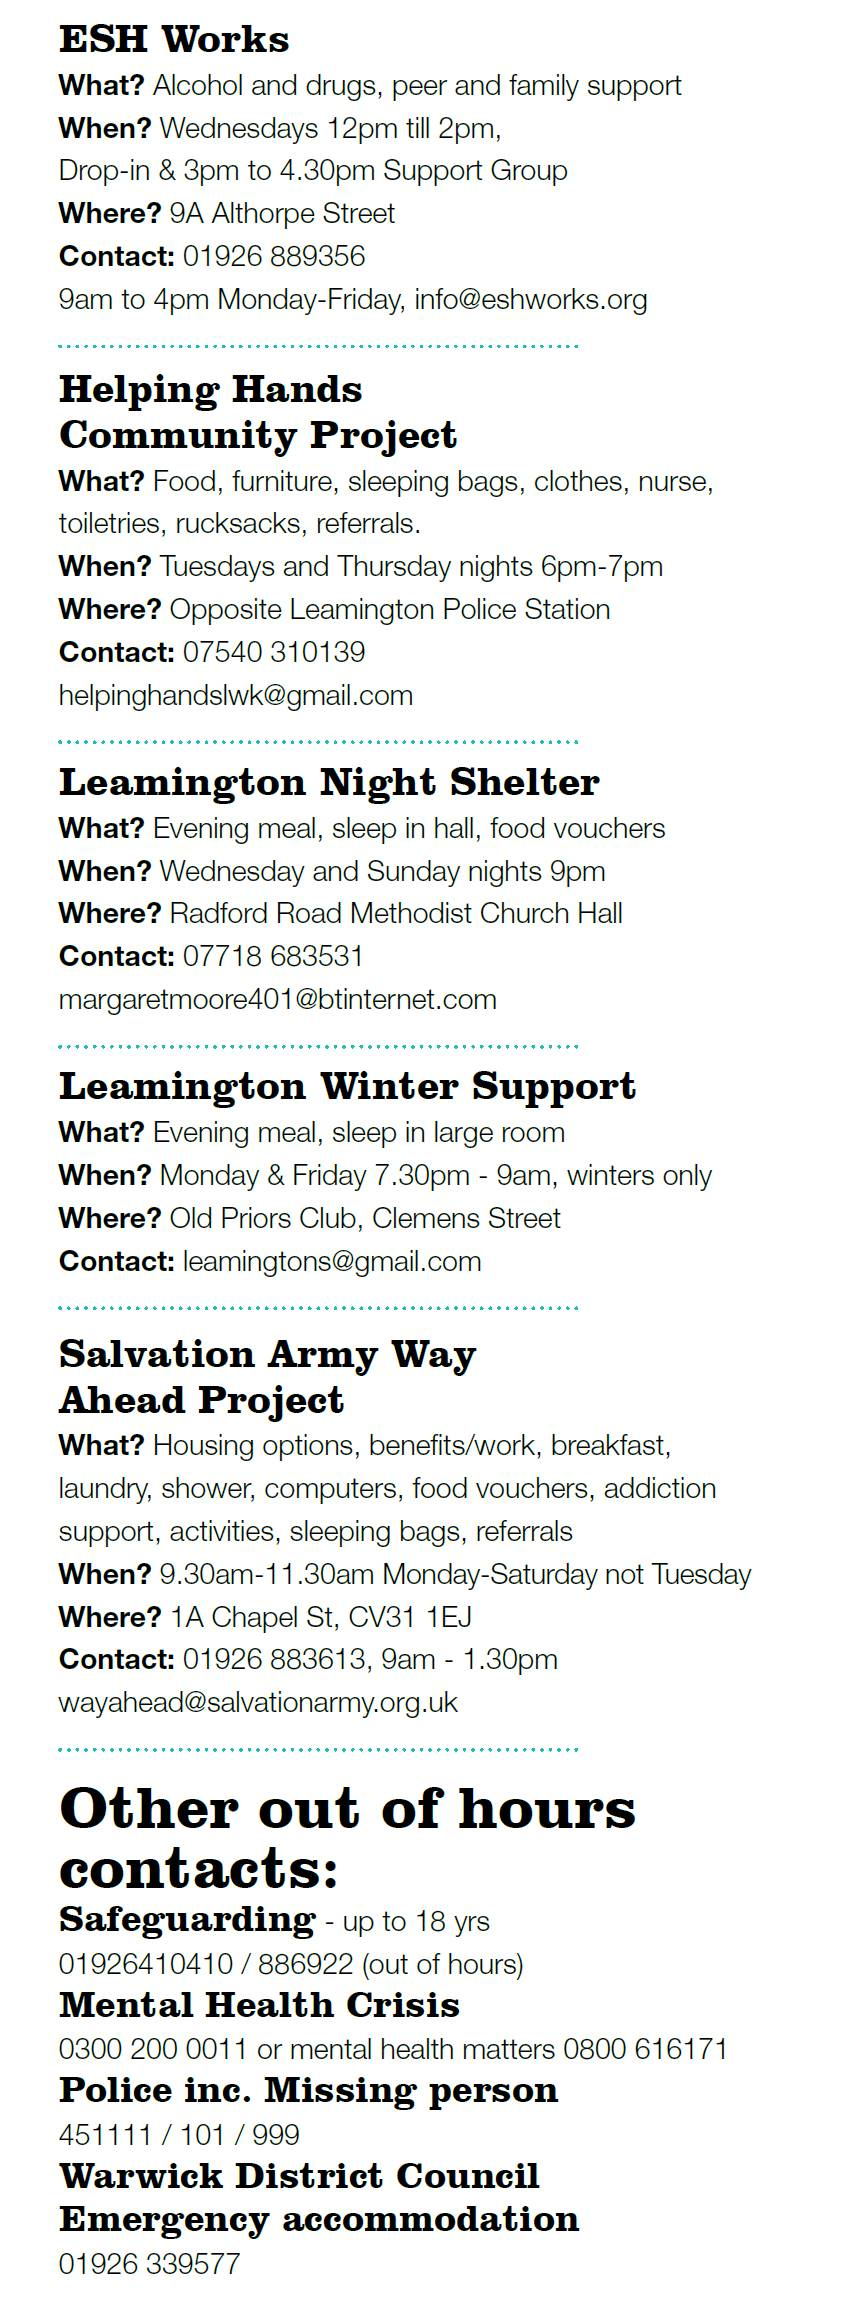 Ways to Help & Out of Hours Contact JPEG